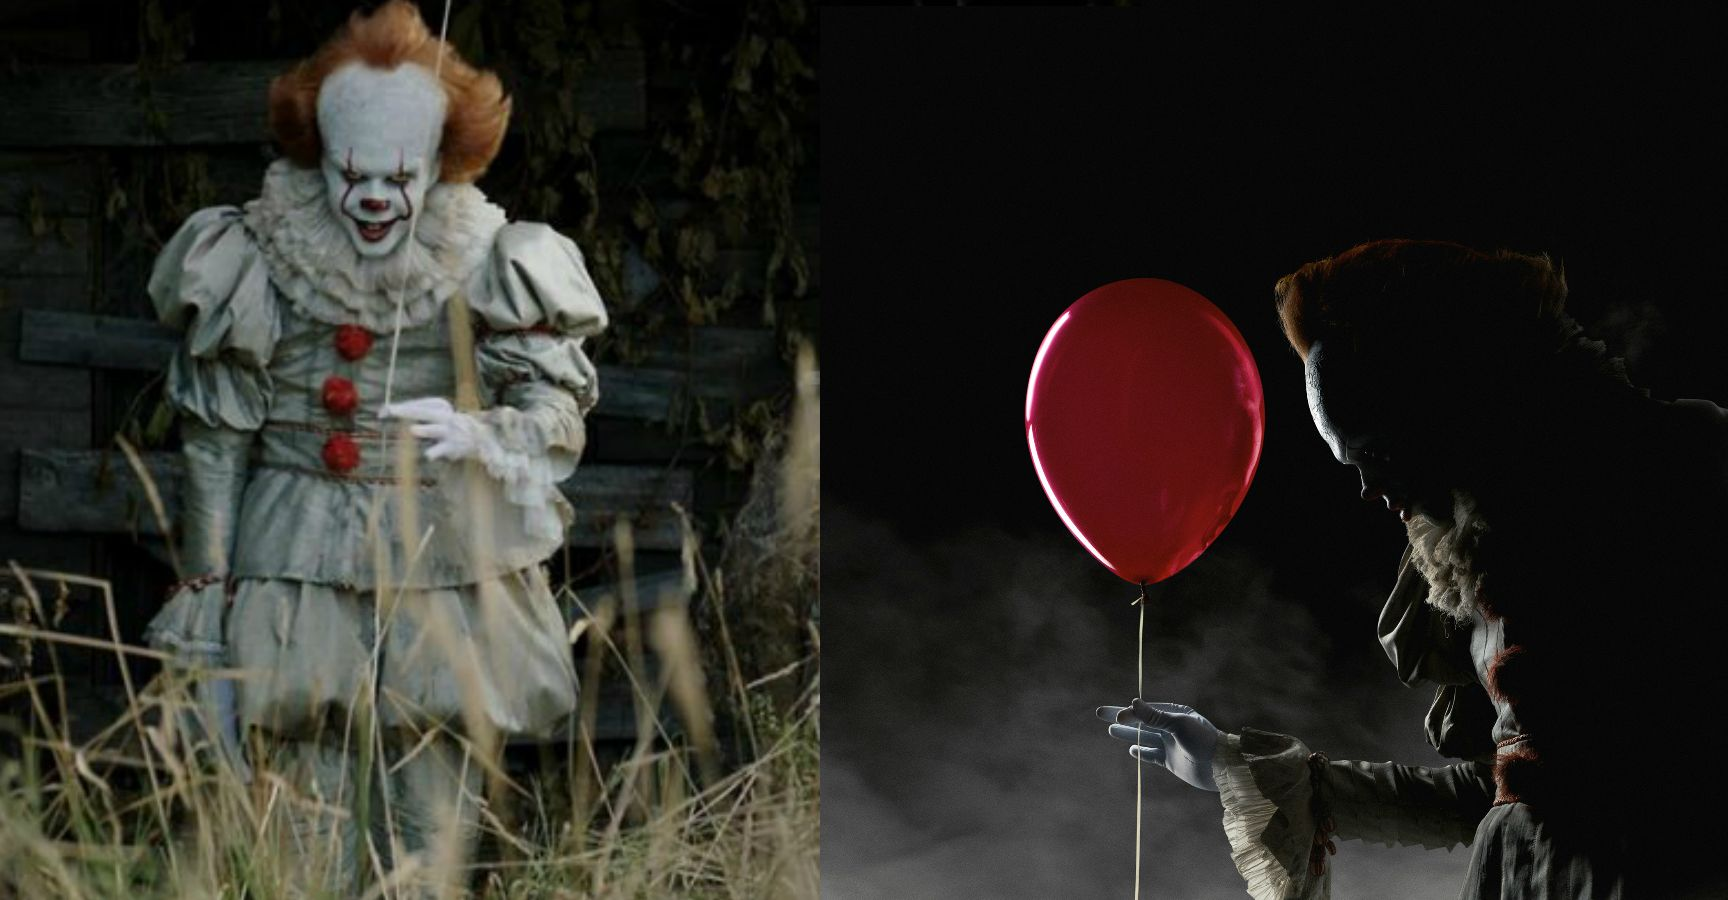 15 Chilling Facts About Pennywise From 'IT' That Make Our Skin Crawl